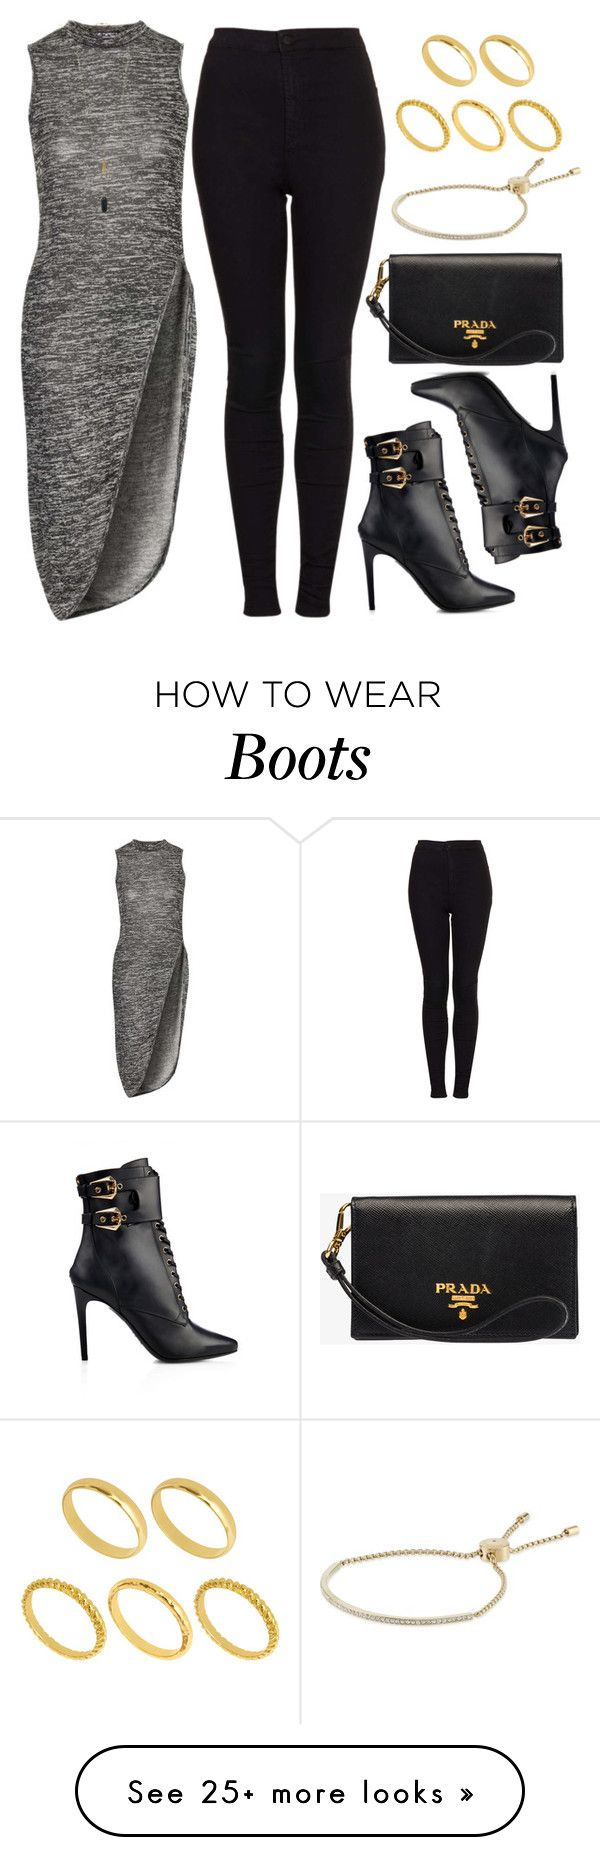 """Style #9843"" by vany-alvarado on Polyvore featuring мода, Topshop, Balmain, Prada, Michael Kors, ASOS, women's clothing, women, female и woman"